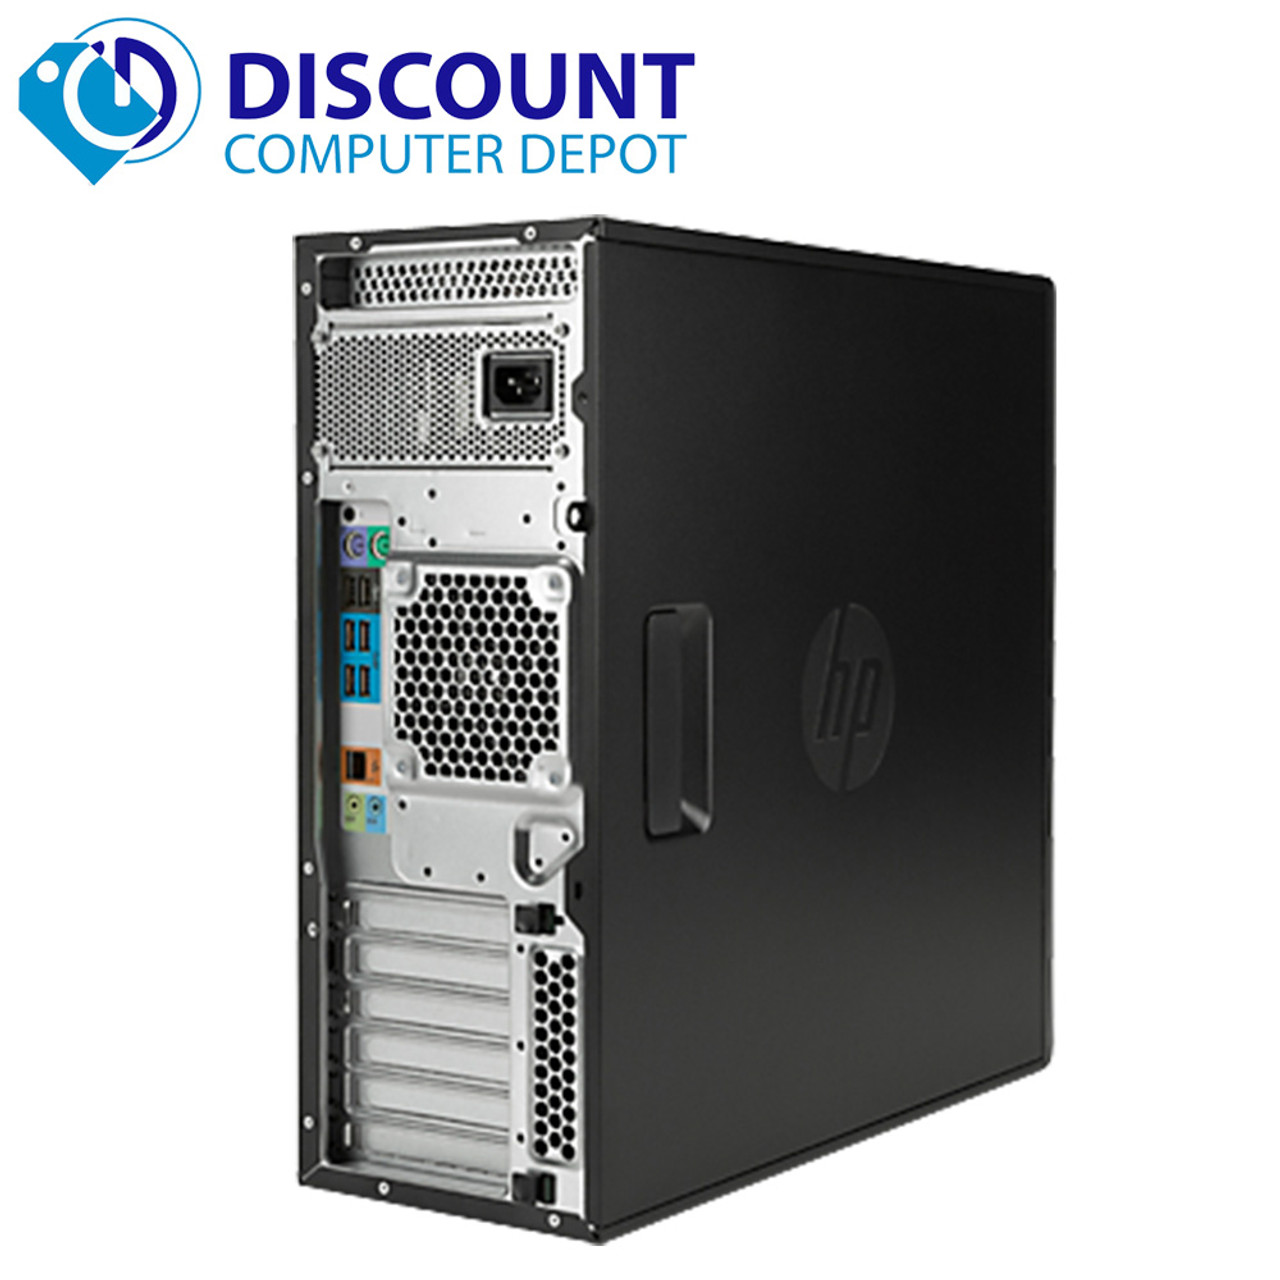 HP Z400 Workstation Desktop Computer PC Intel Xeon 2 53GHZ 8GB 1TB Windows  10 Pro with Dedicated Graphics and WIFI